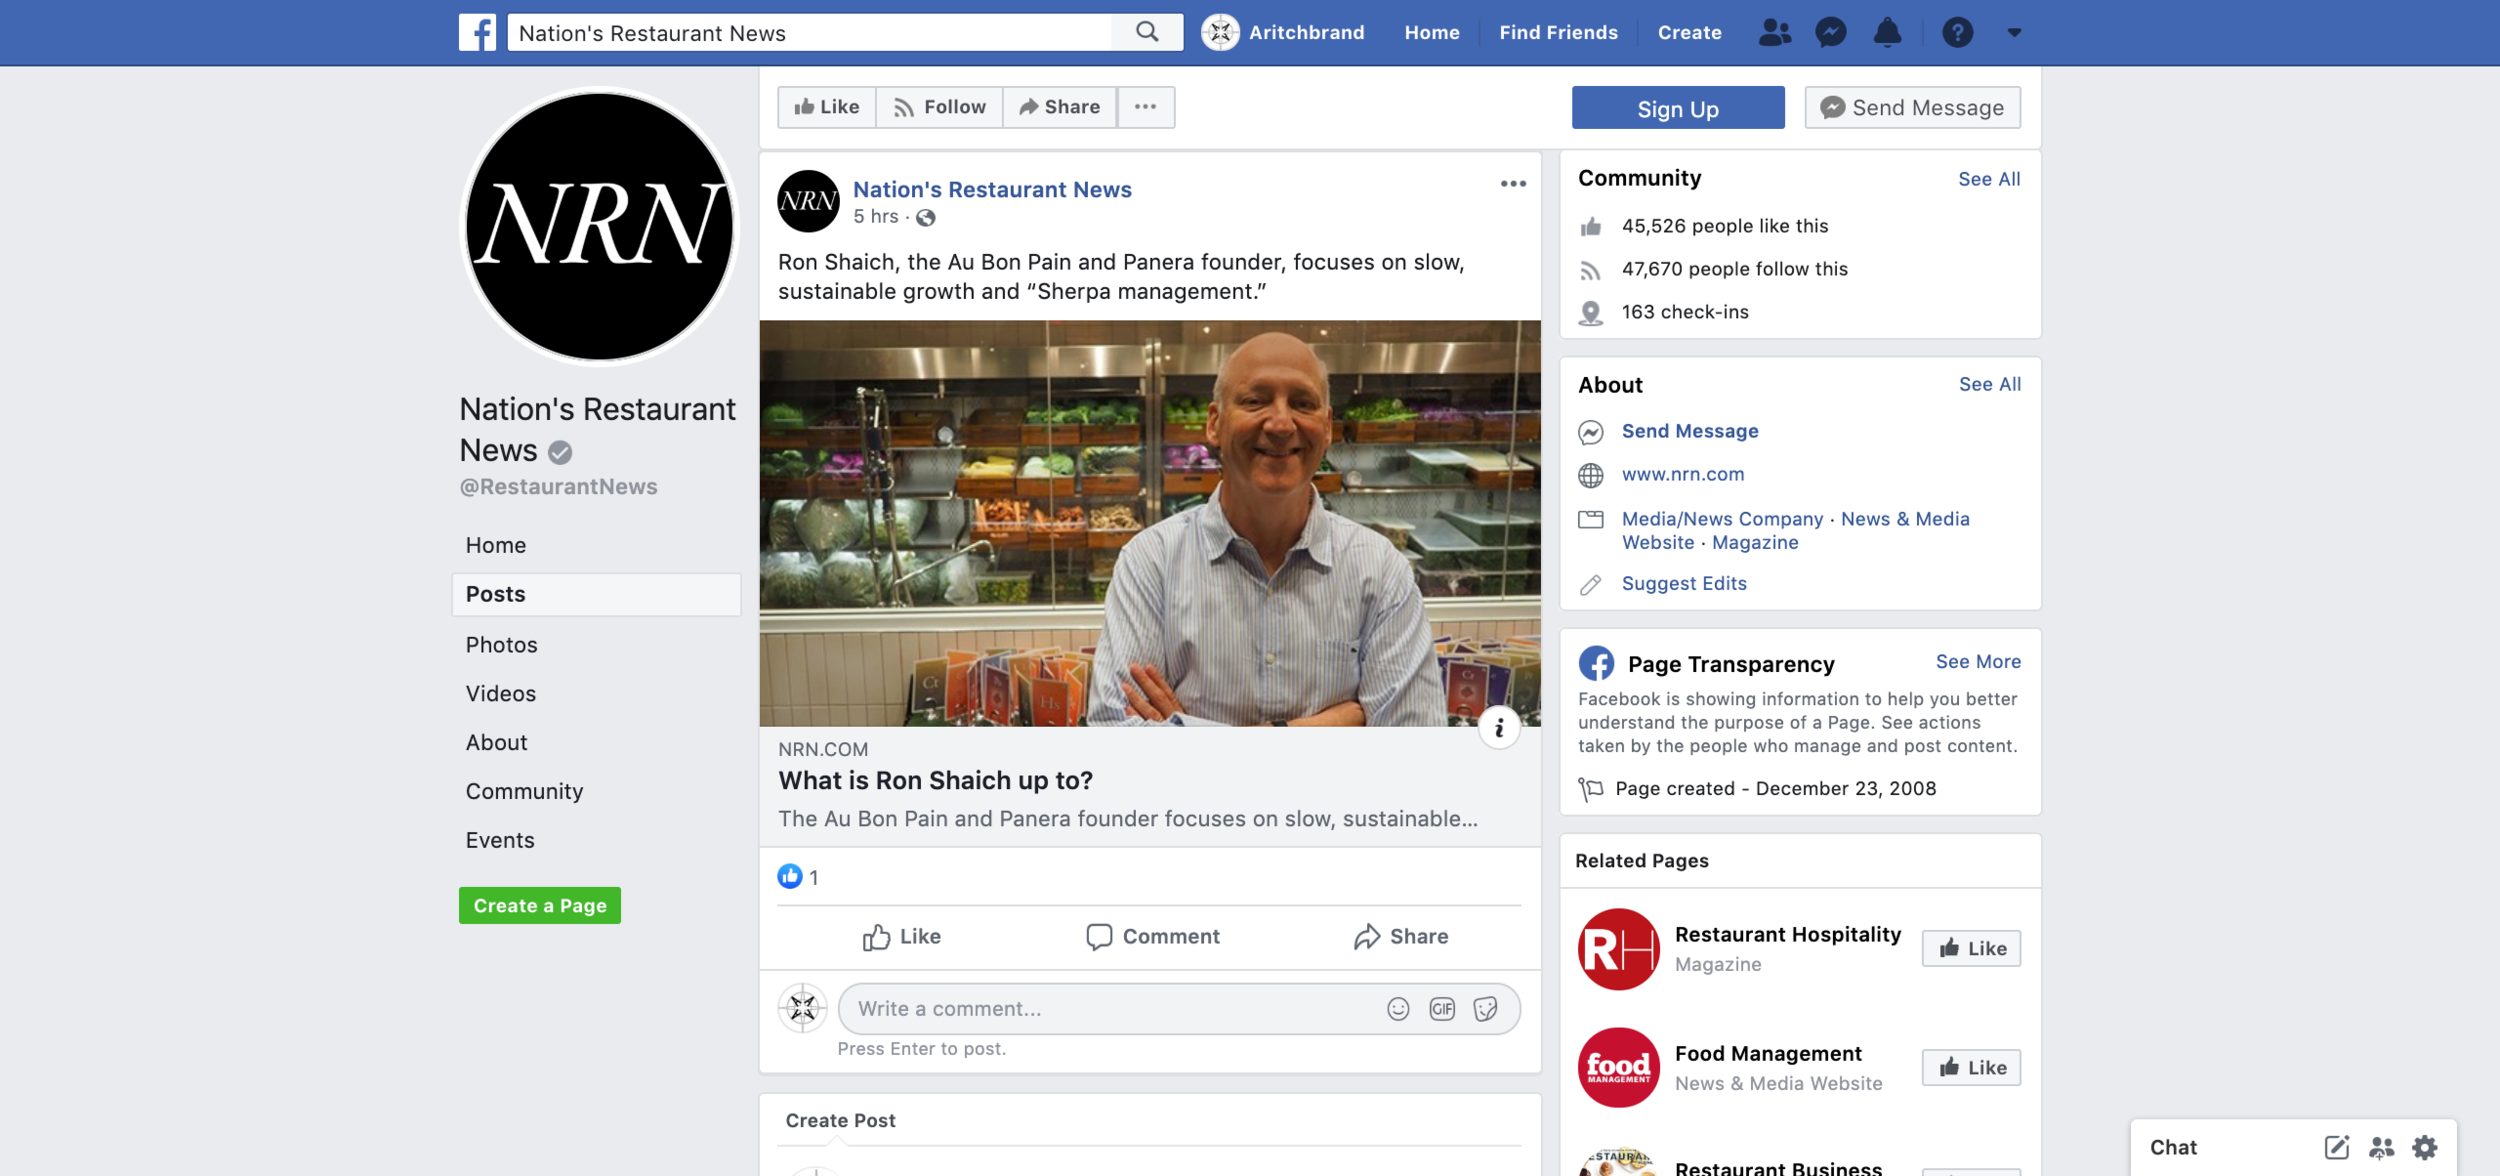 2019.05.22_Nation's Restaurant News, Facebook_Life Alive Back Bay.png